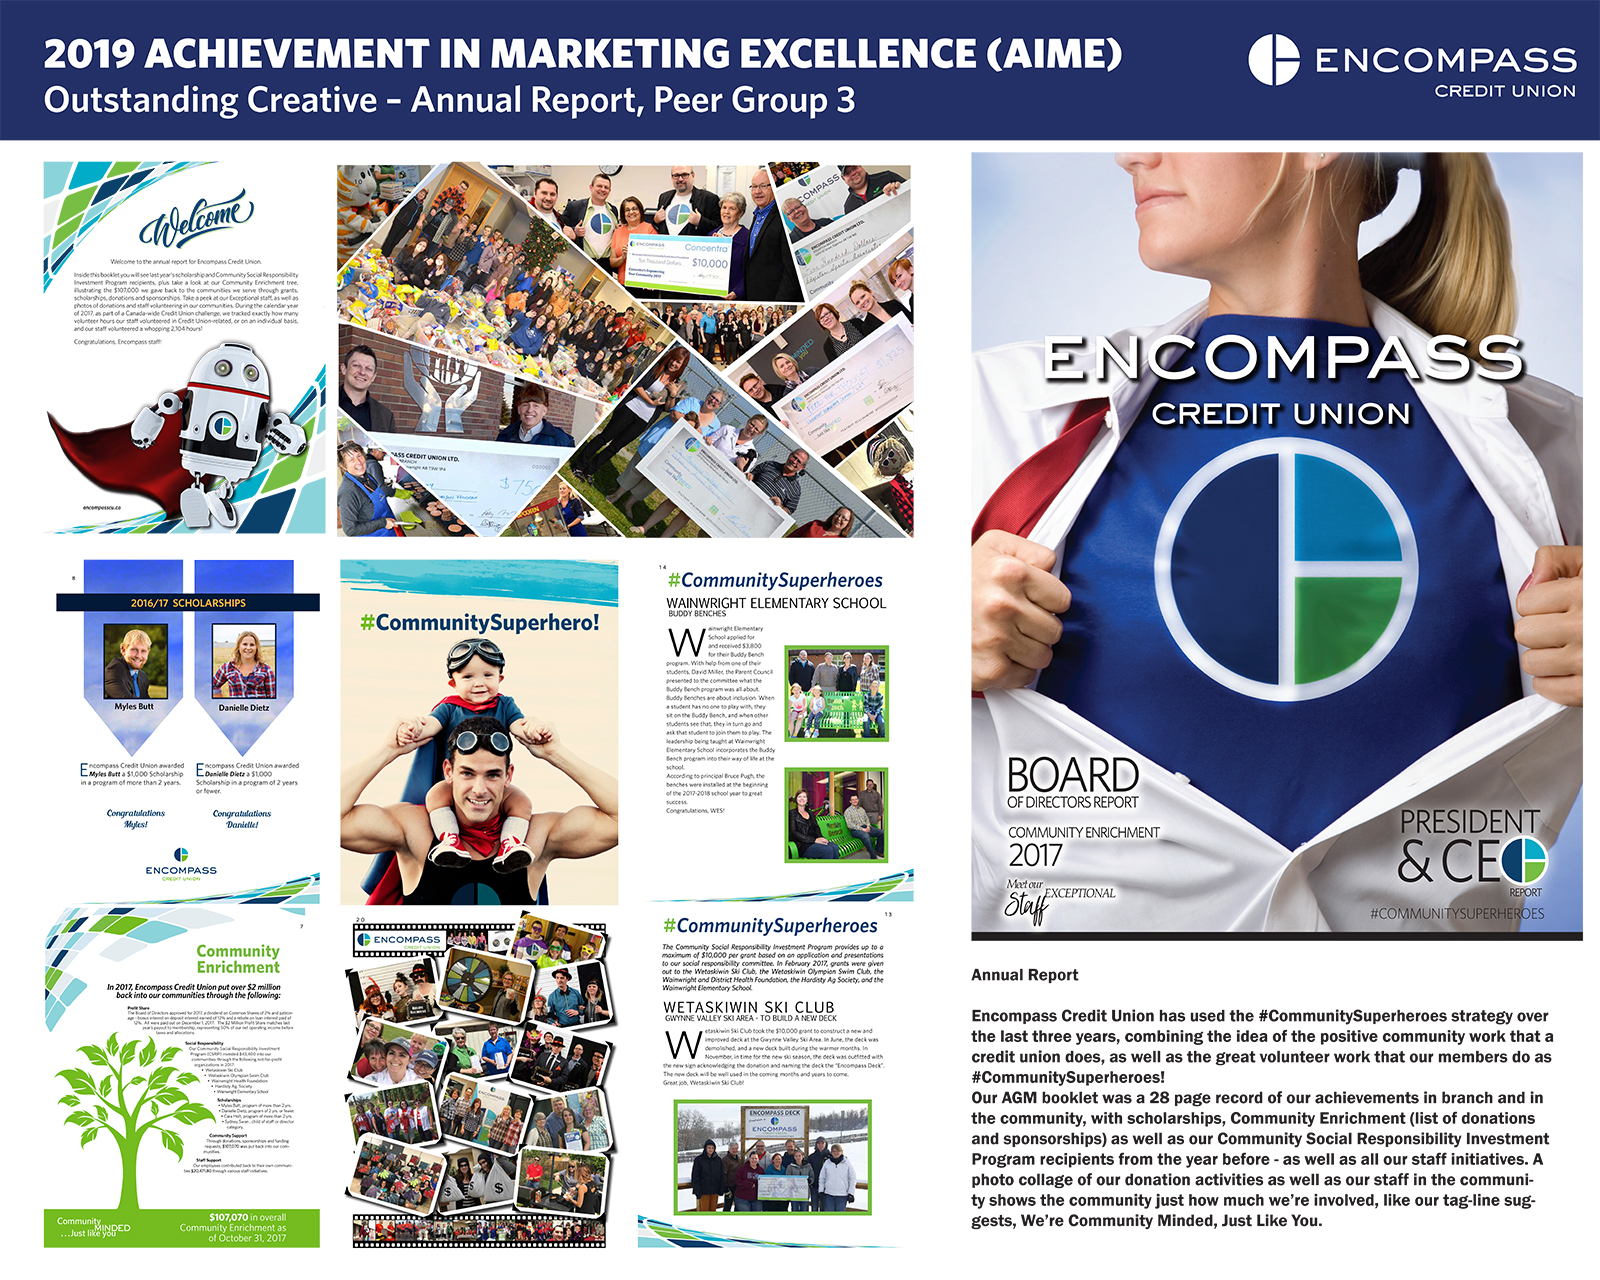 Front cover of annual report with blonde-haired woman tearing open her shirt like Clark Kent from Superman with Encompass Credit Union logo replacing Superman logo.